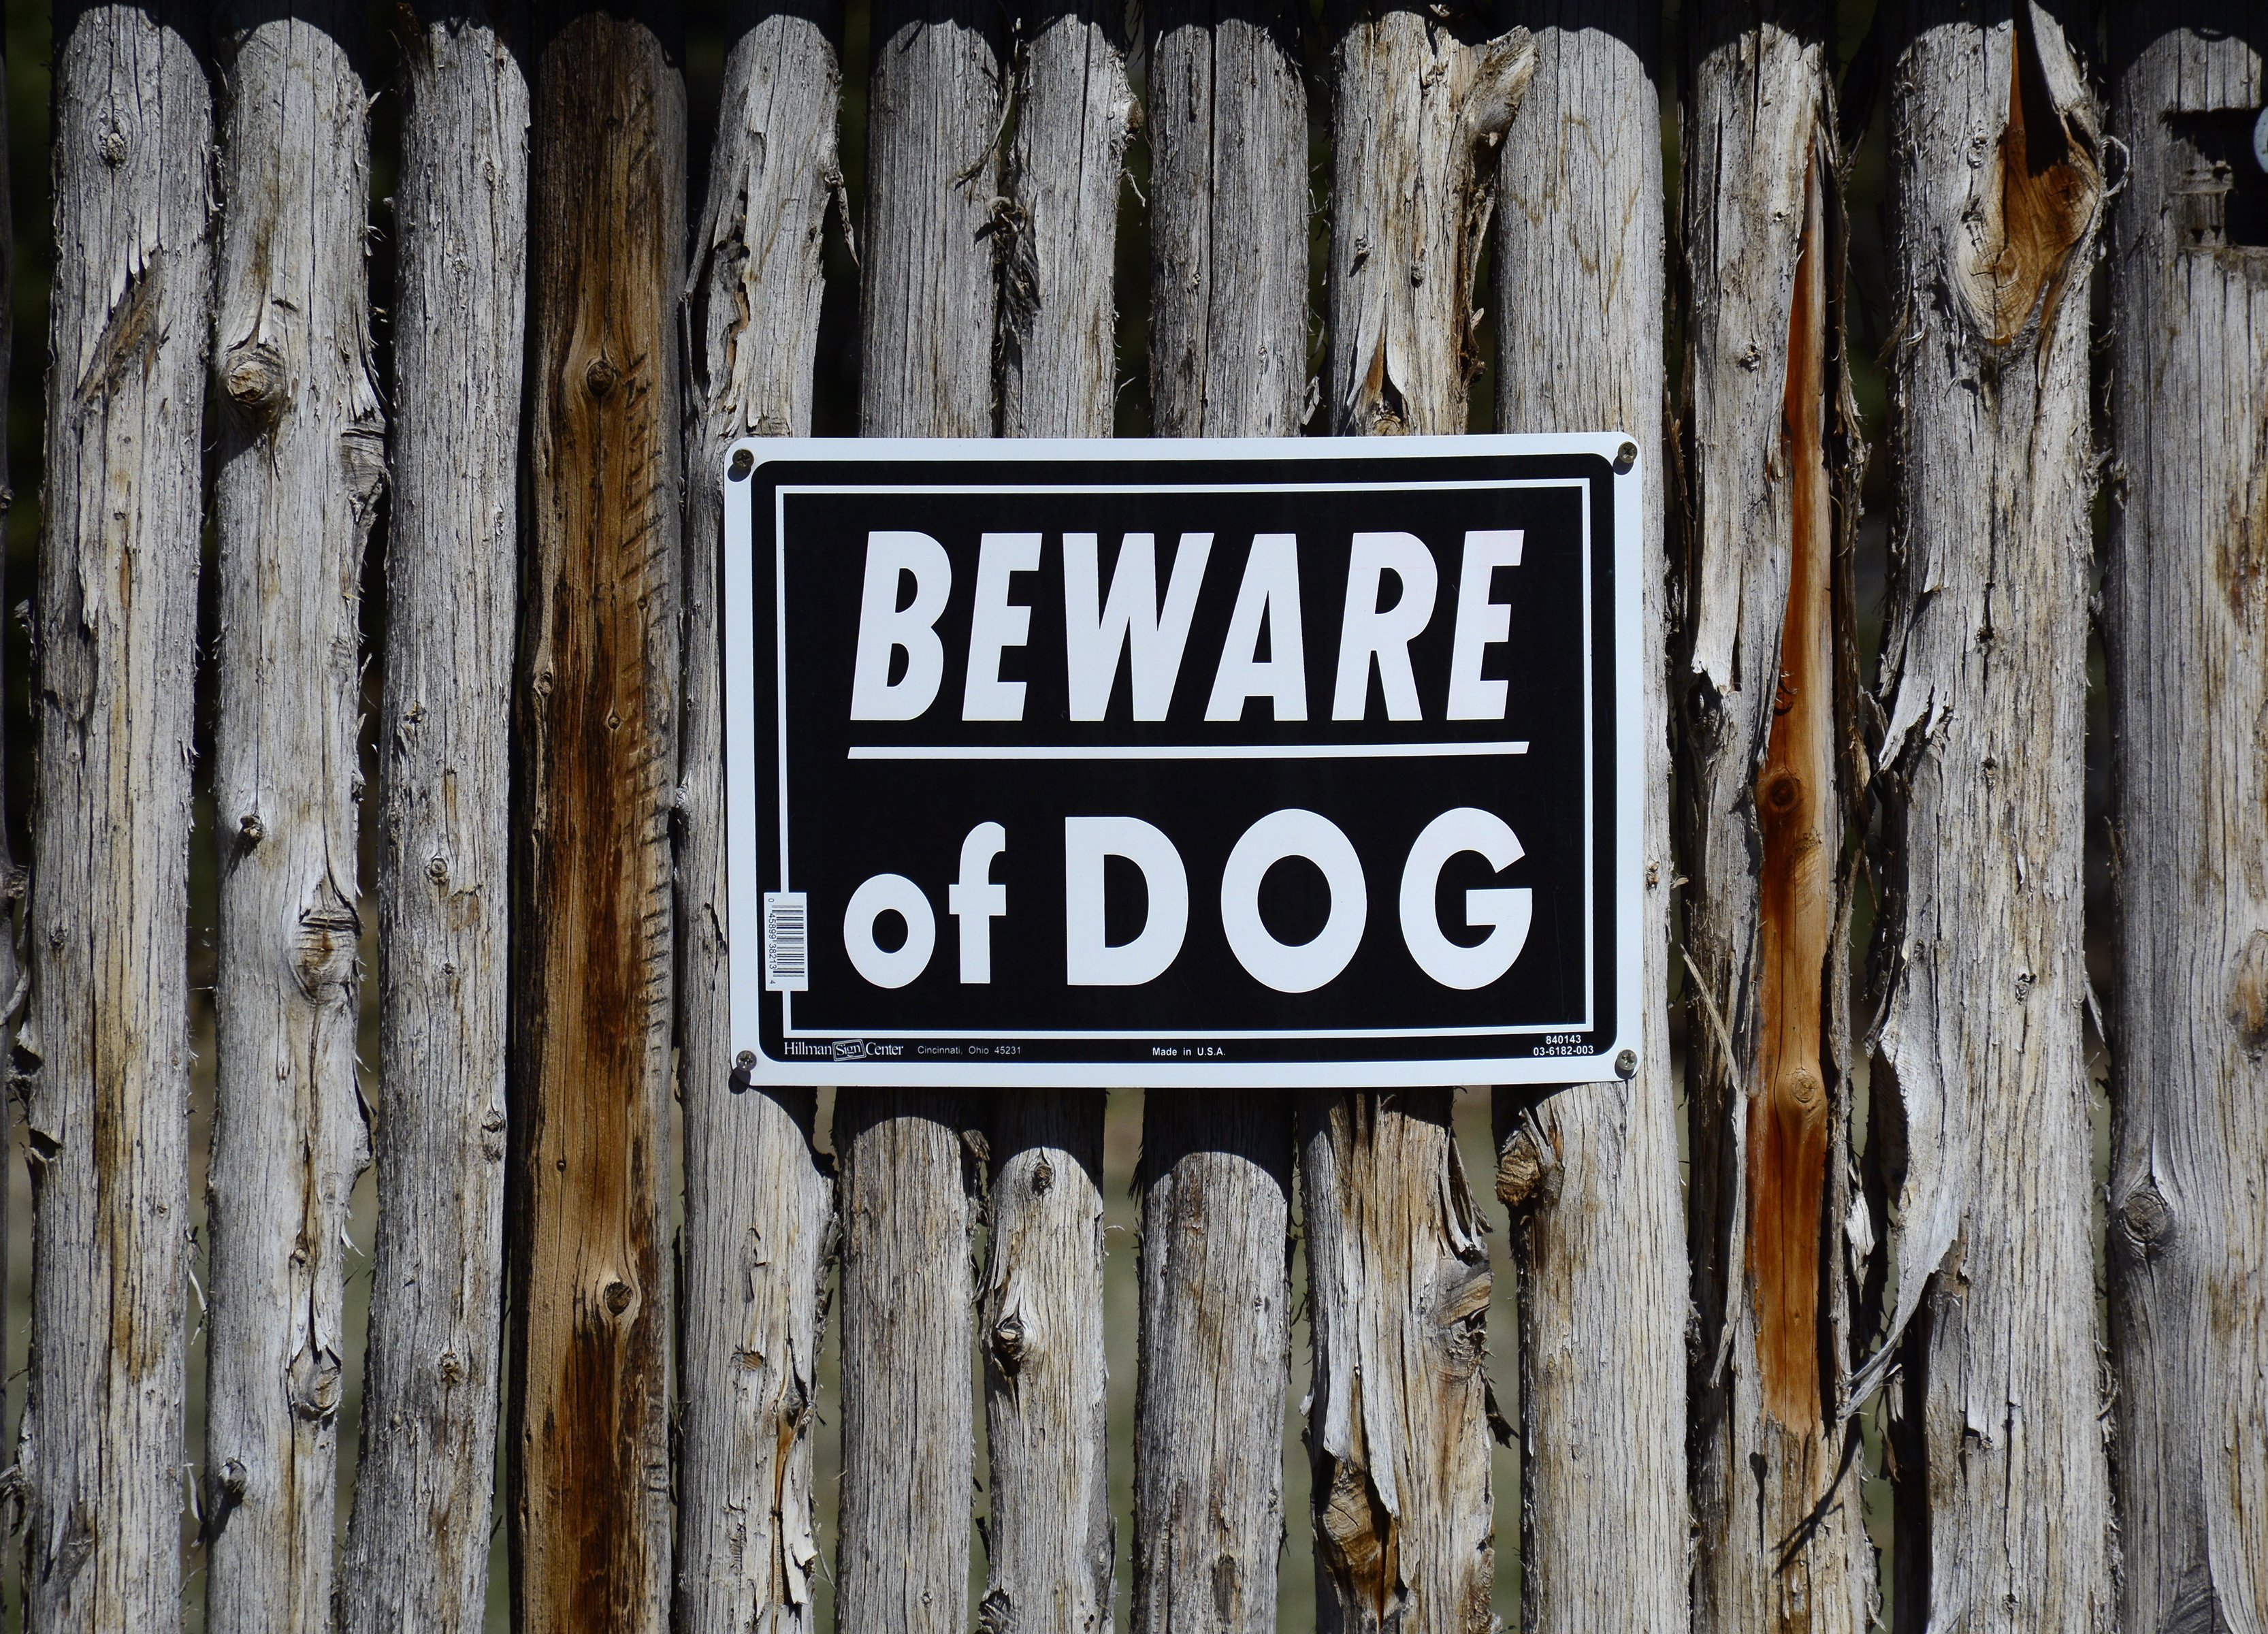 A 'Beware of Dog' sign is mounted to a rustic yard fence in Santa Fe, New Mexico. MAY 14, 2017 |Photo: Getty Images